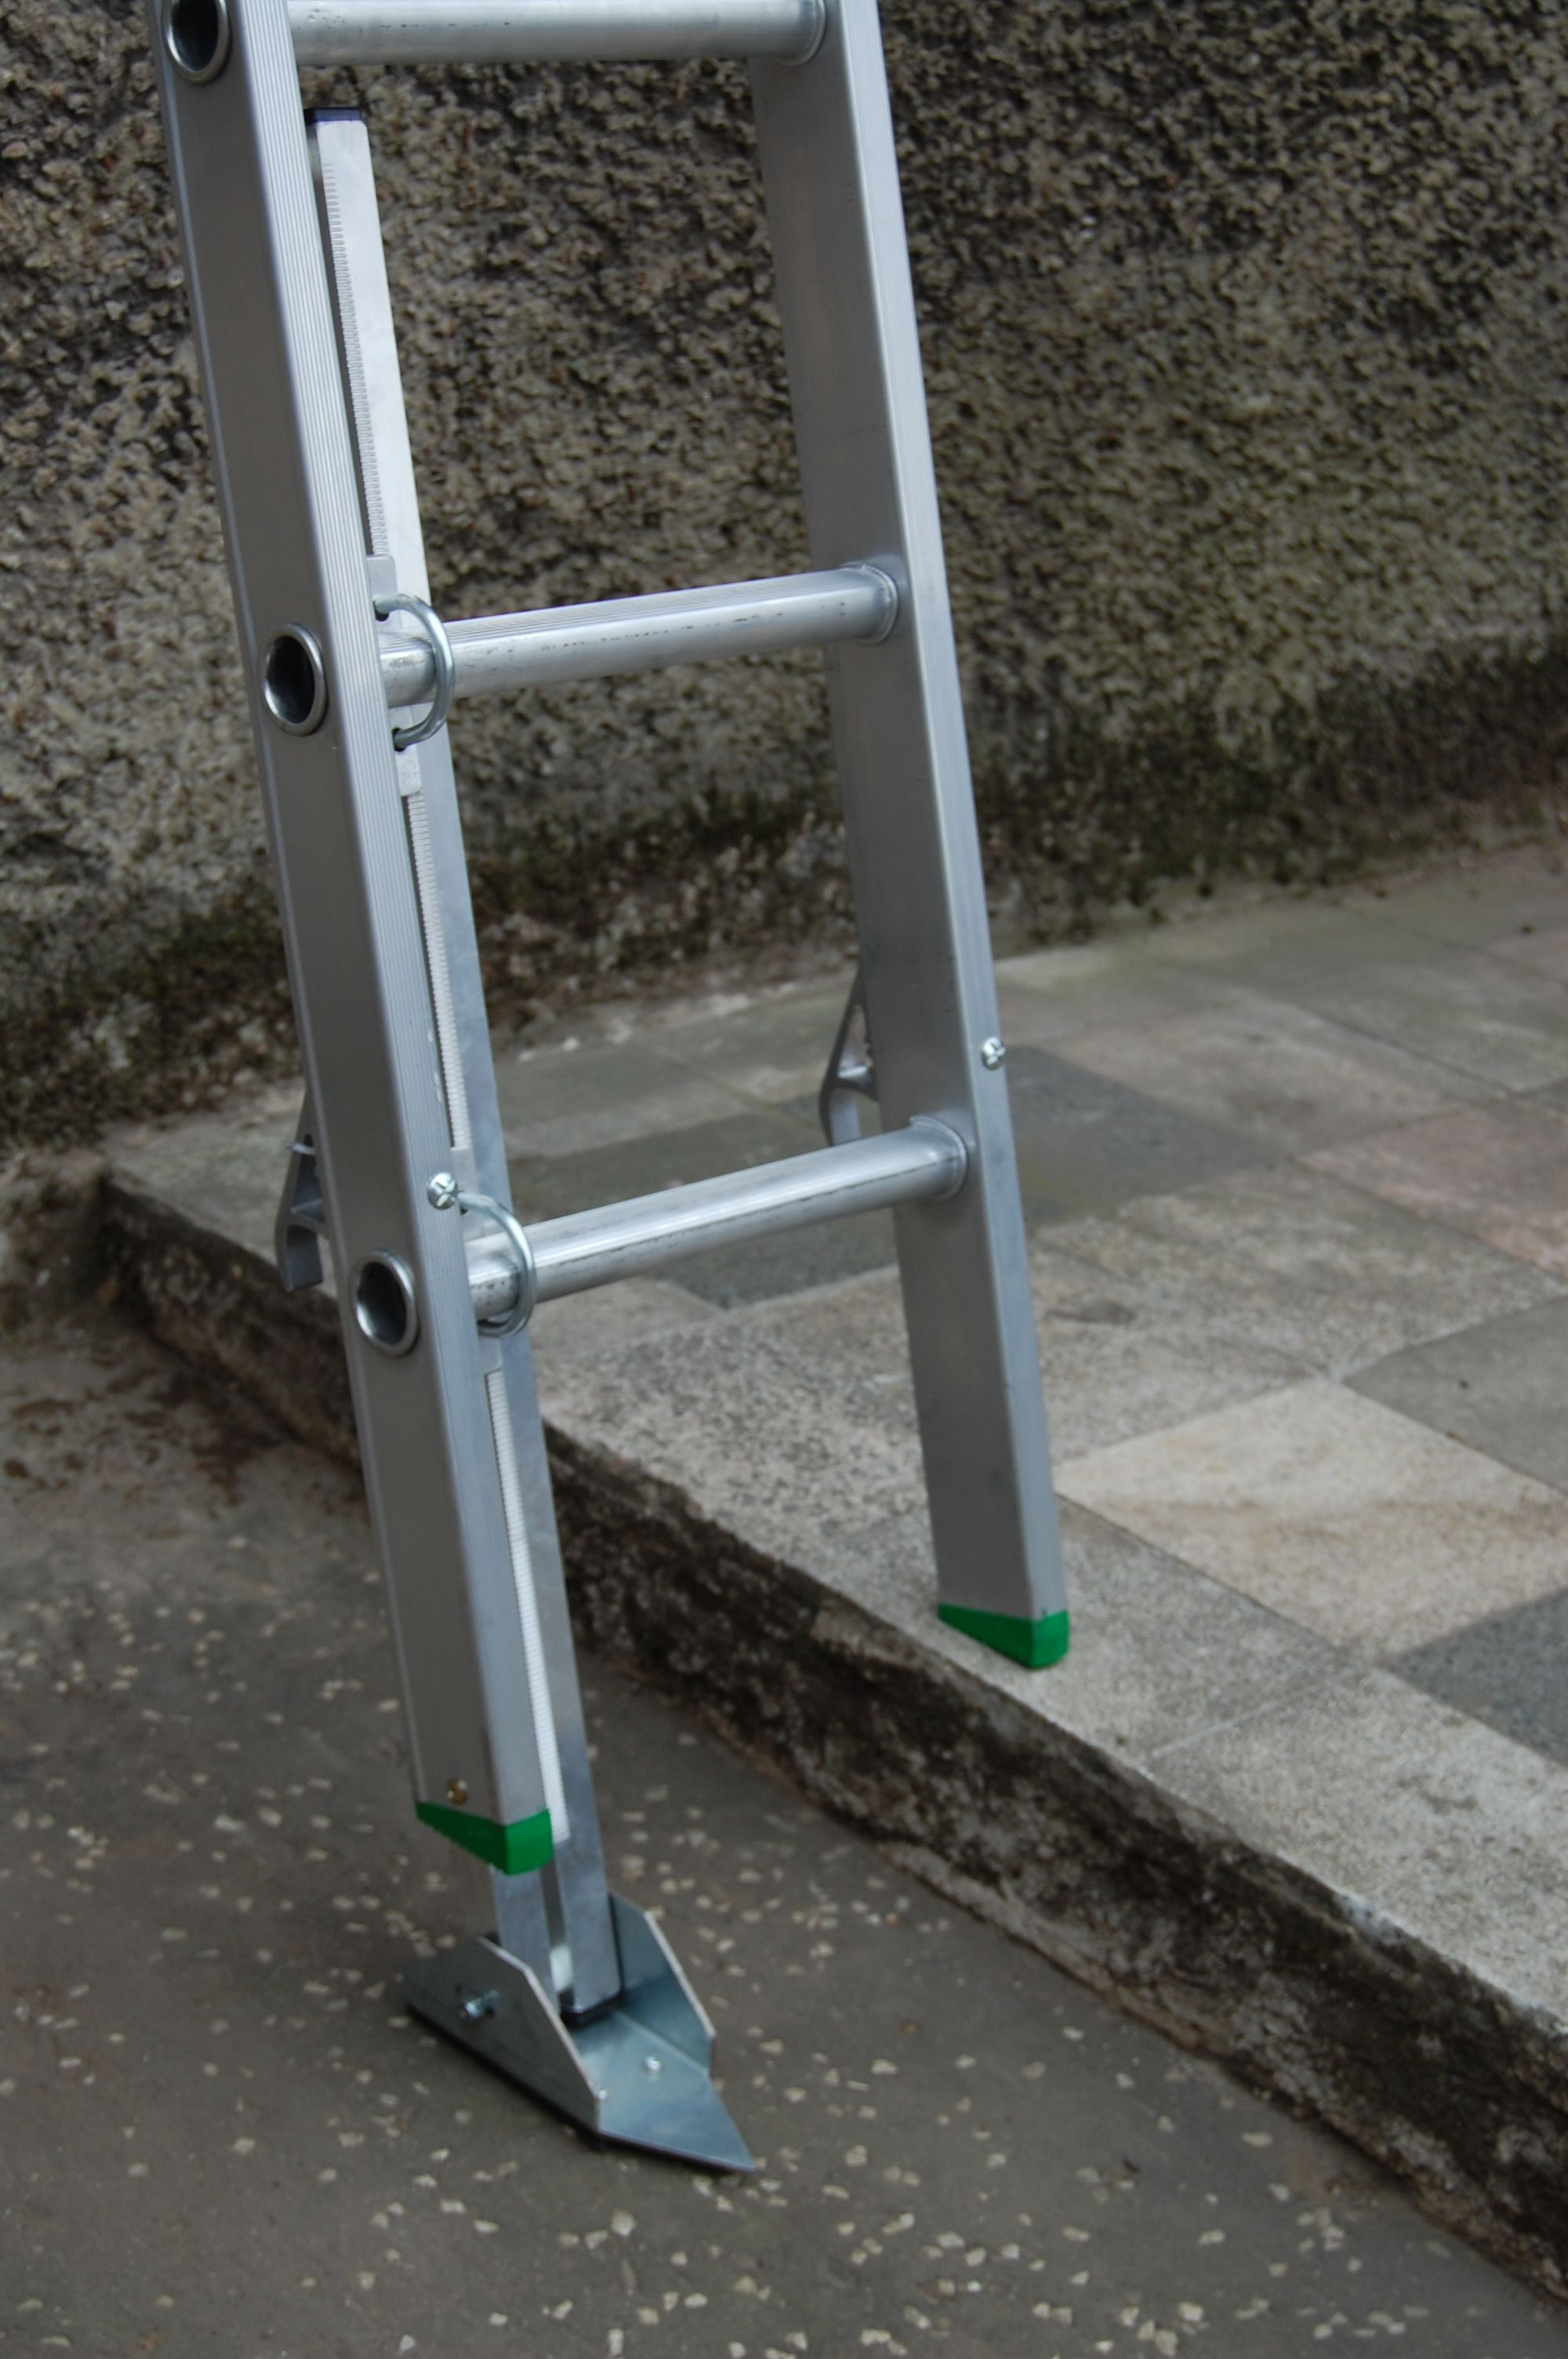 Clow Adjustable Ladder Leg With Spike Ladders Direct Com Ladder Ladder Accessories Adjustable Ladder